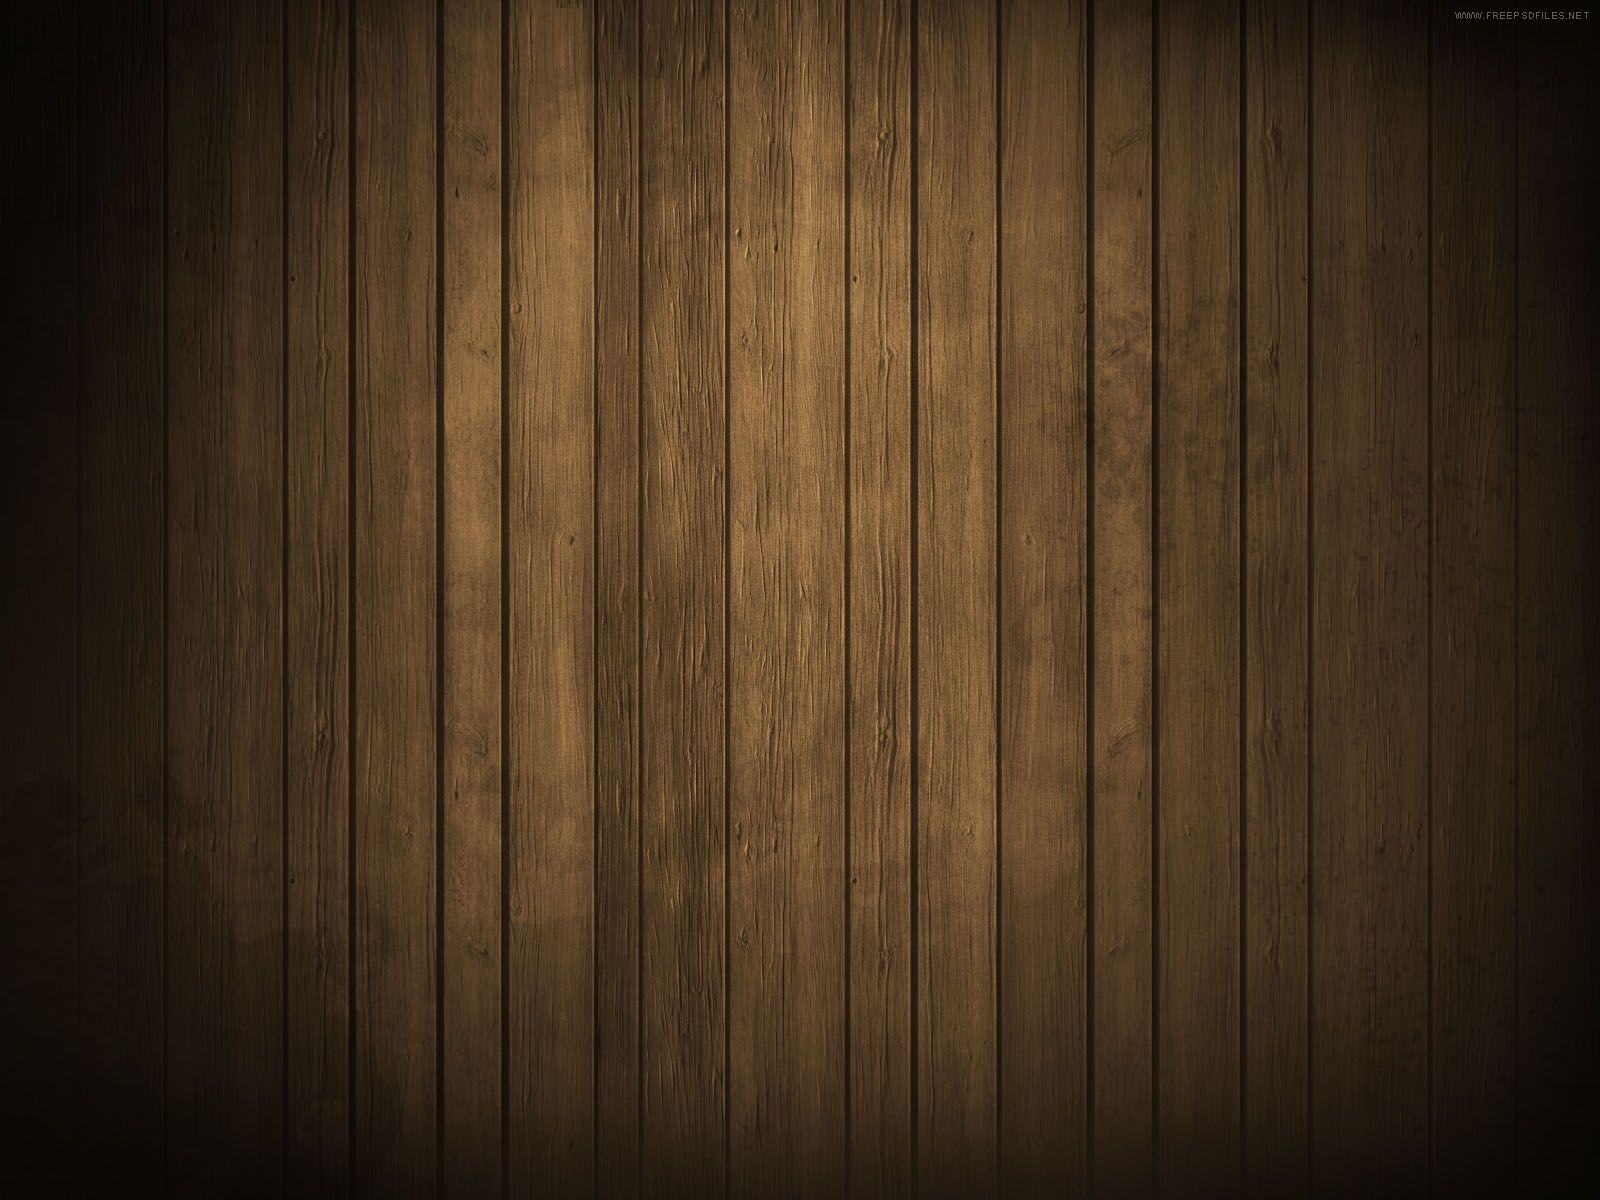 Wood 4k Wallpapers Top Free Wood 4k Backgrounds